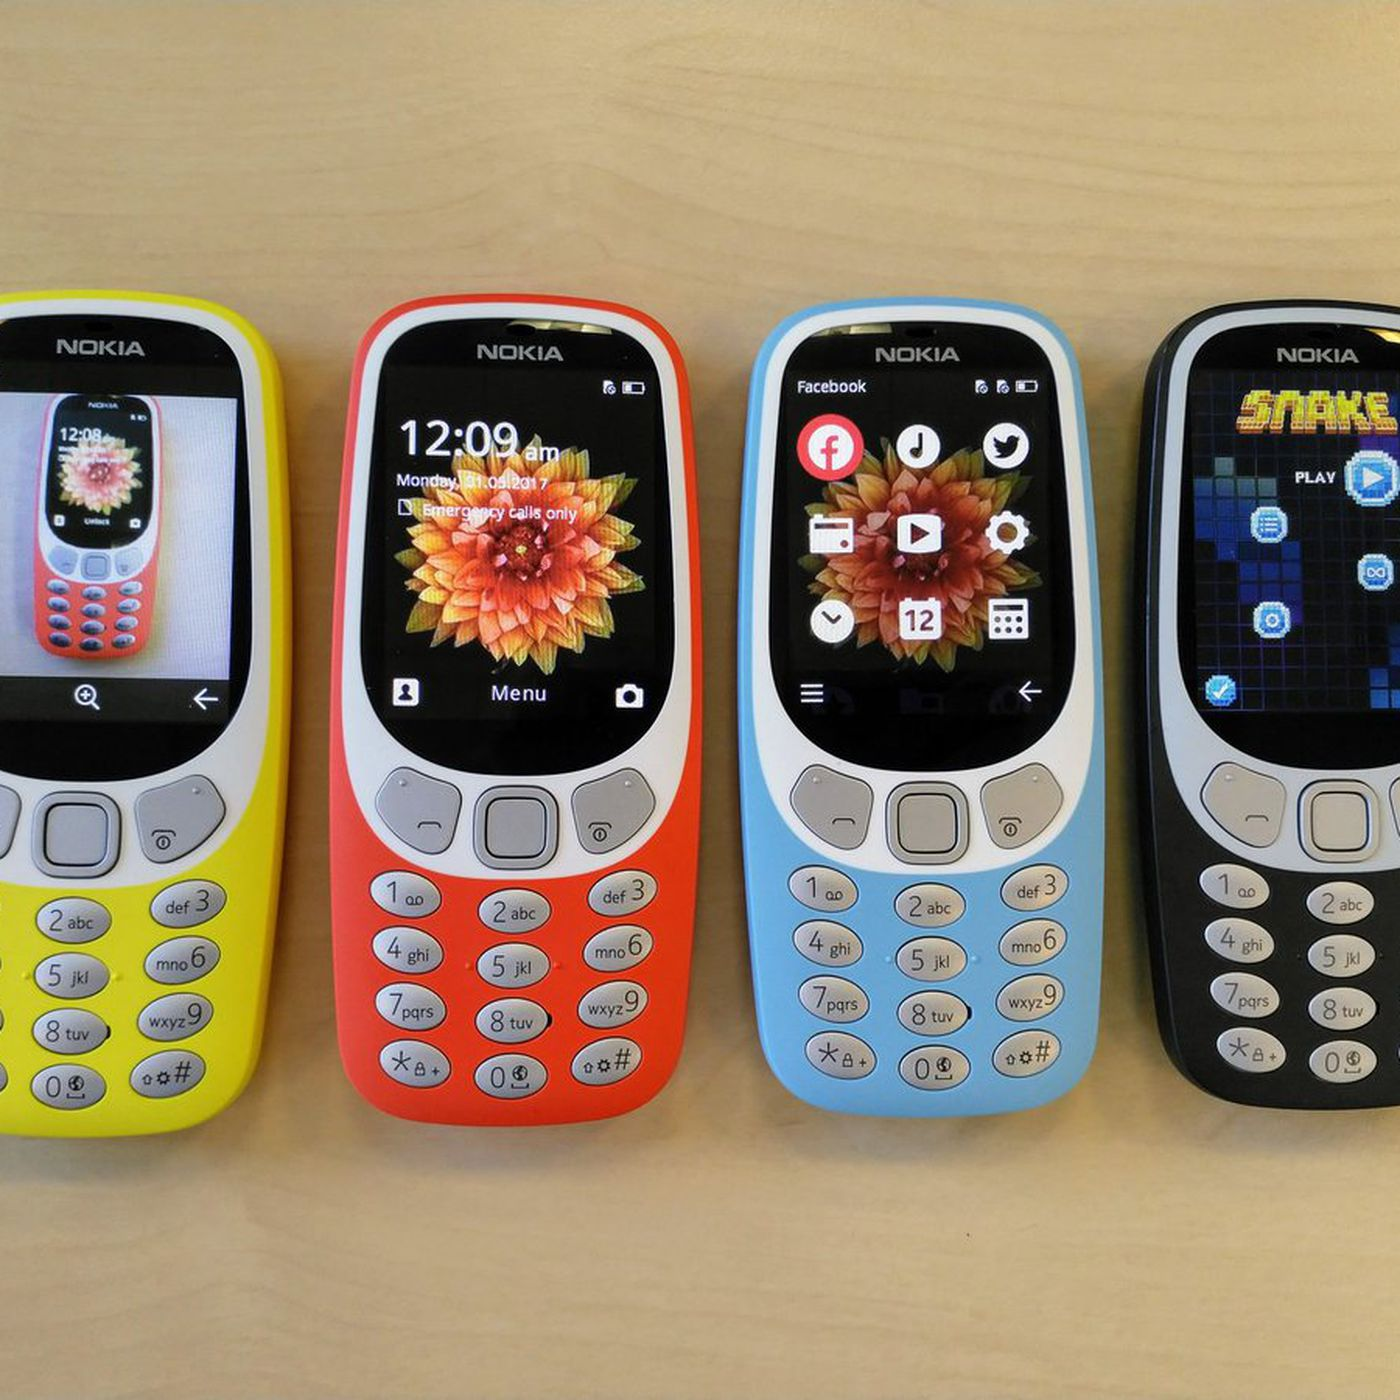 The retro Nokia 3310 now comes with 3G and works in the US - The Verge